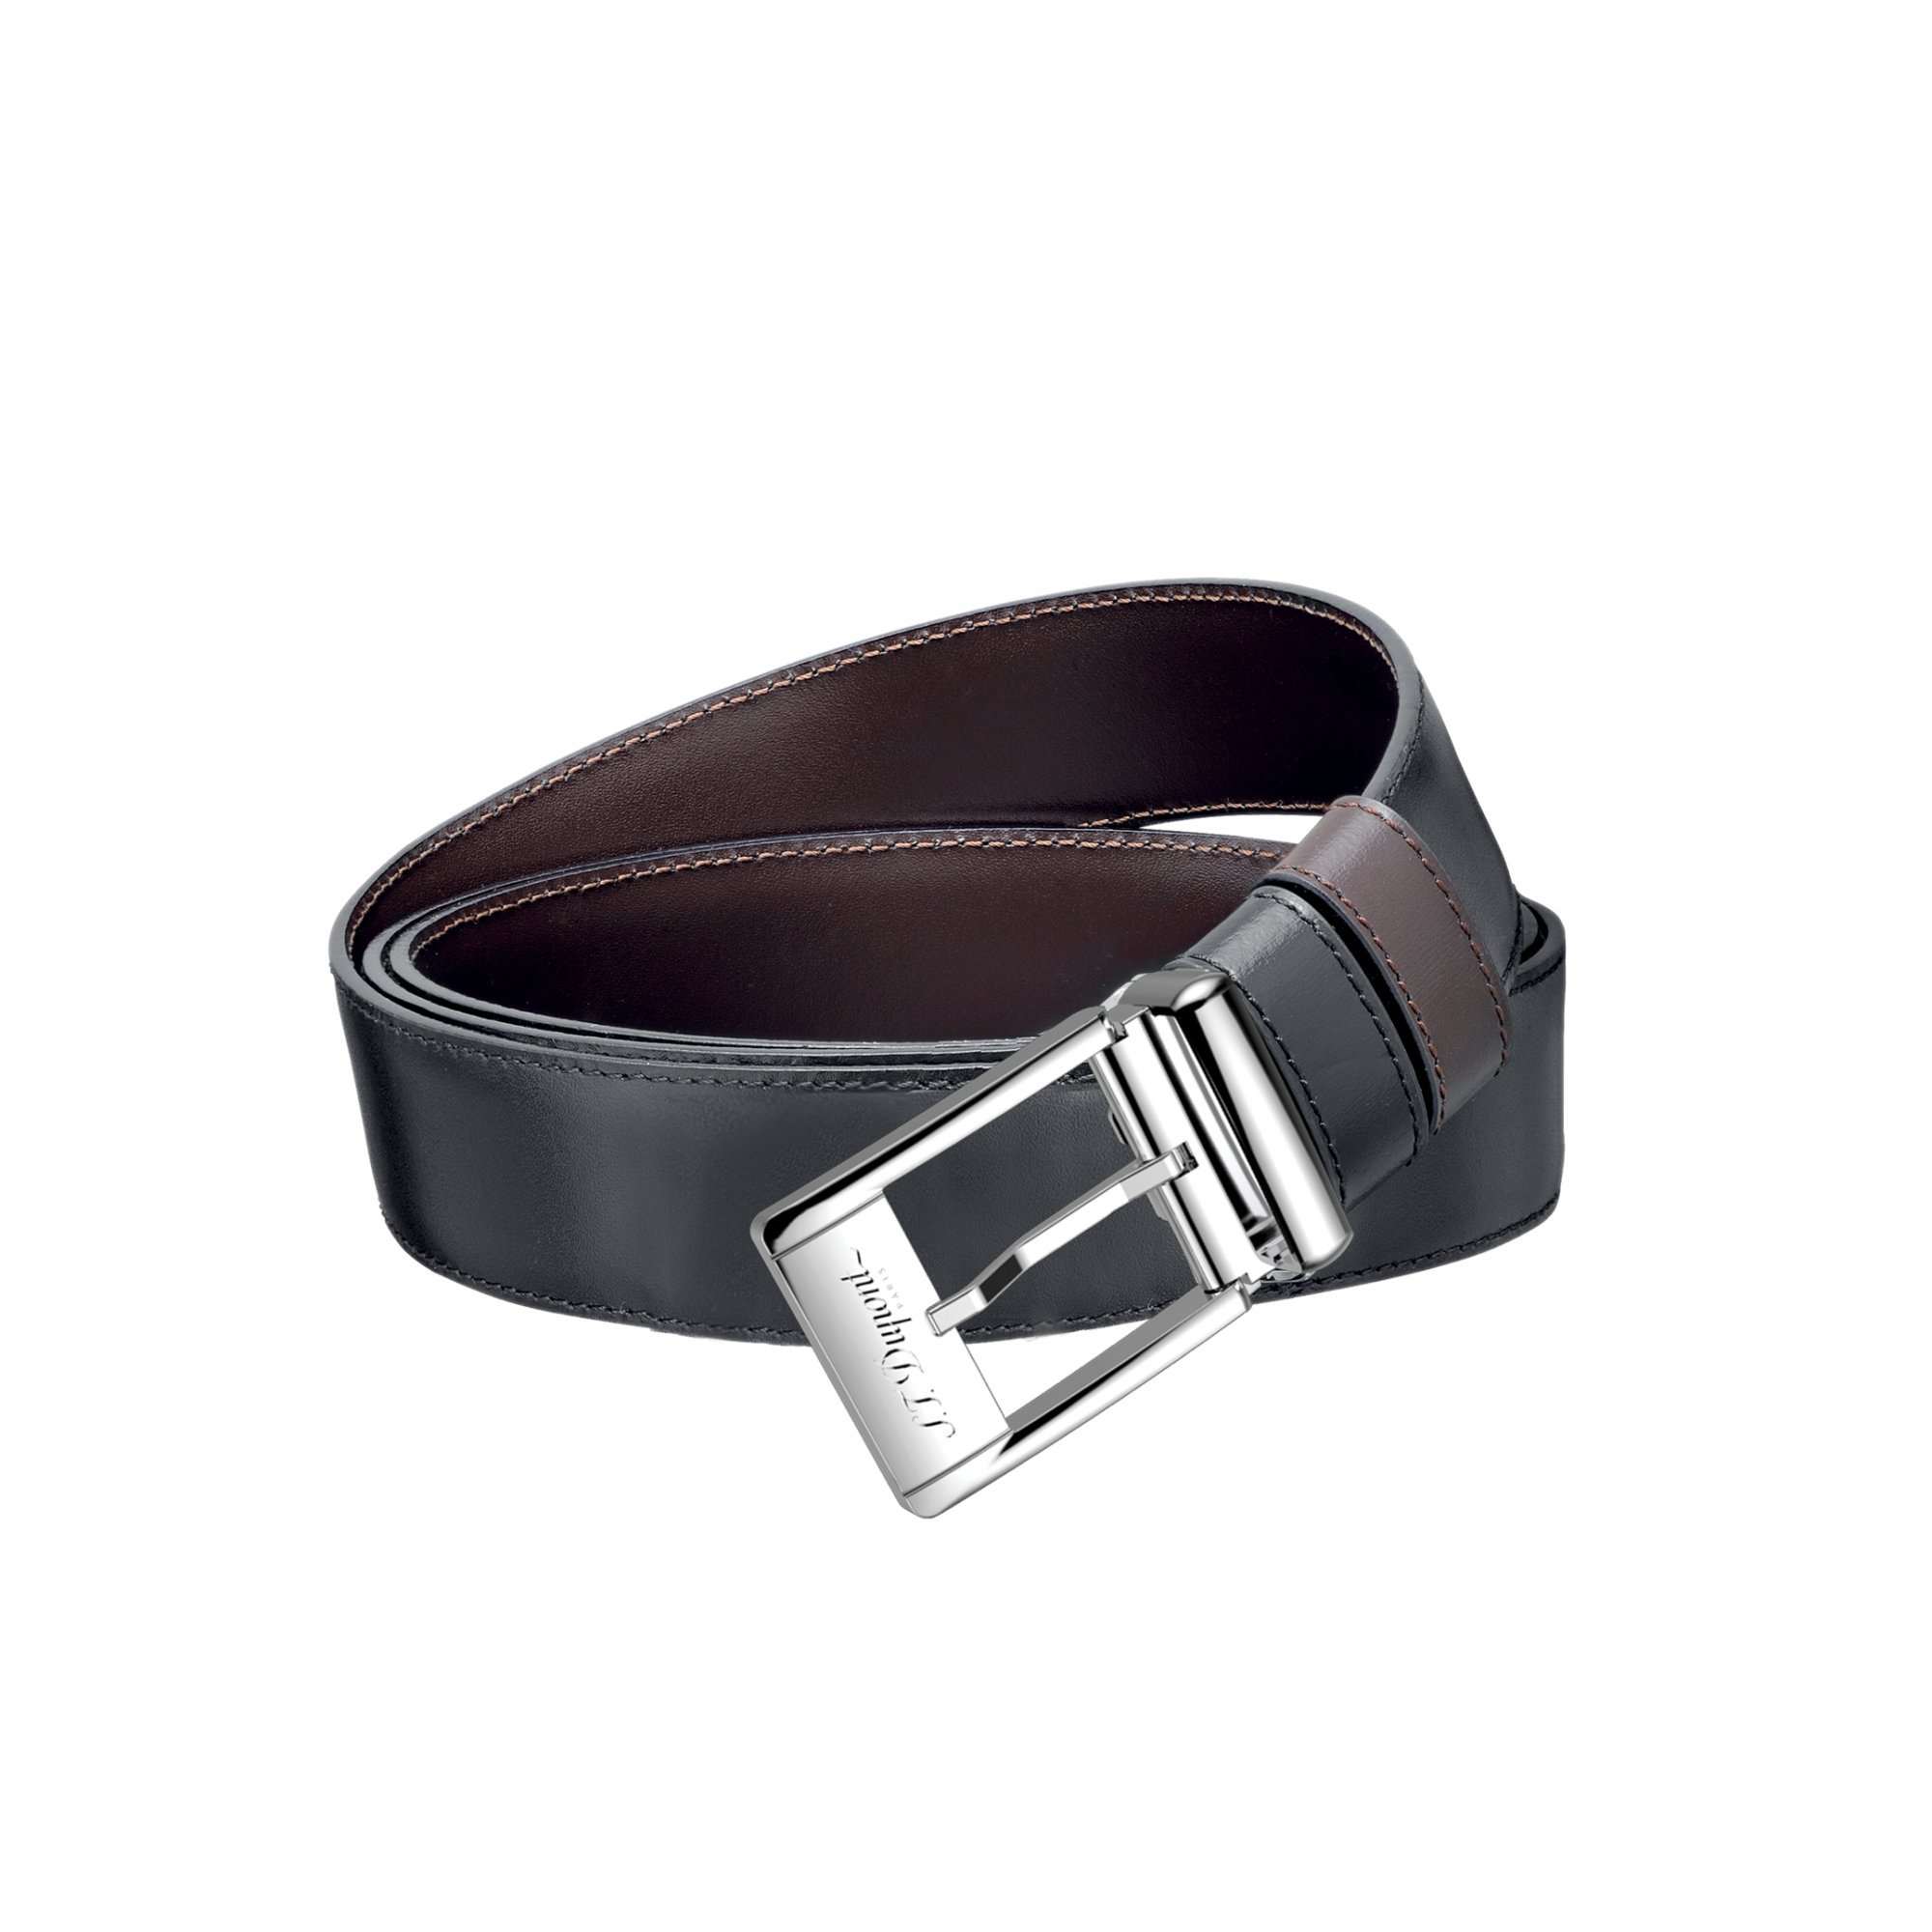 S.T. Dupont 9560120 Palladium Auto-Reversible Buckle Business Belt